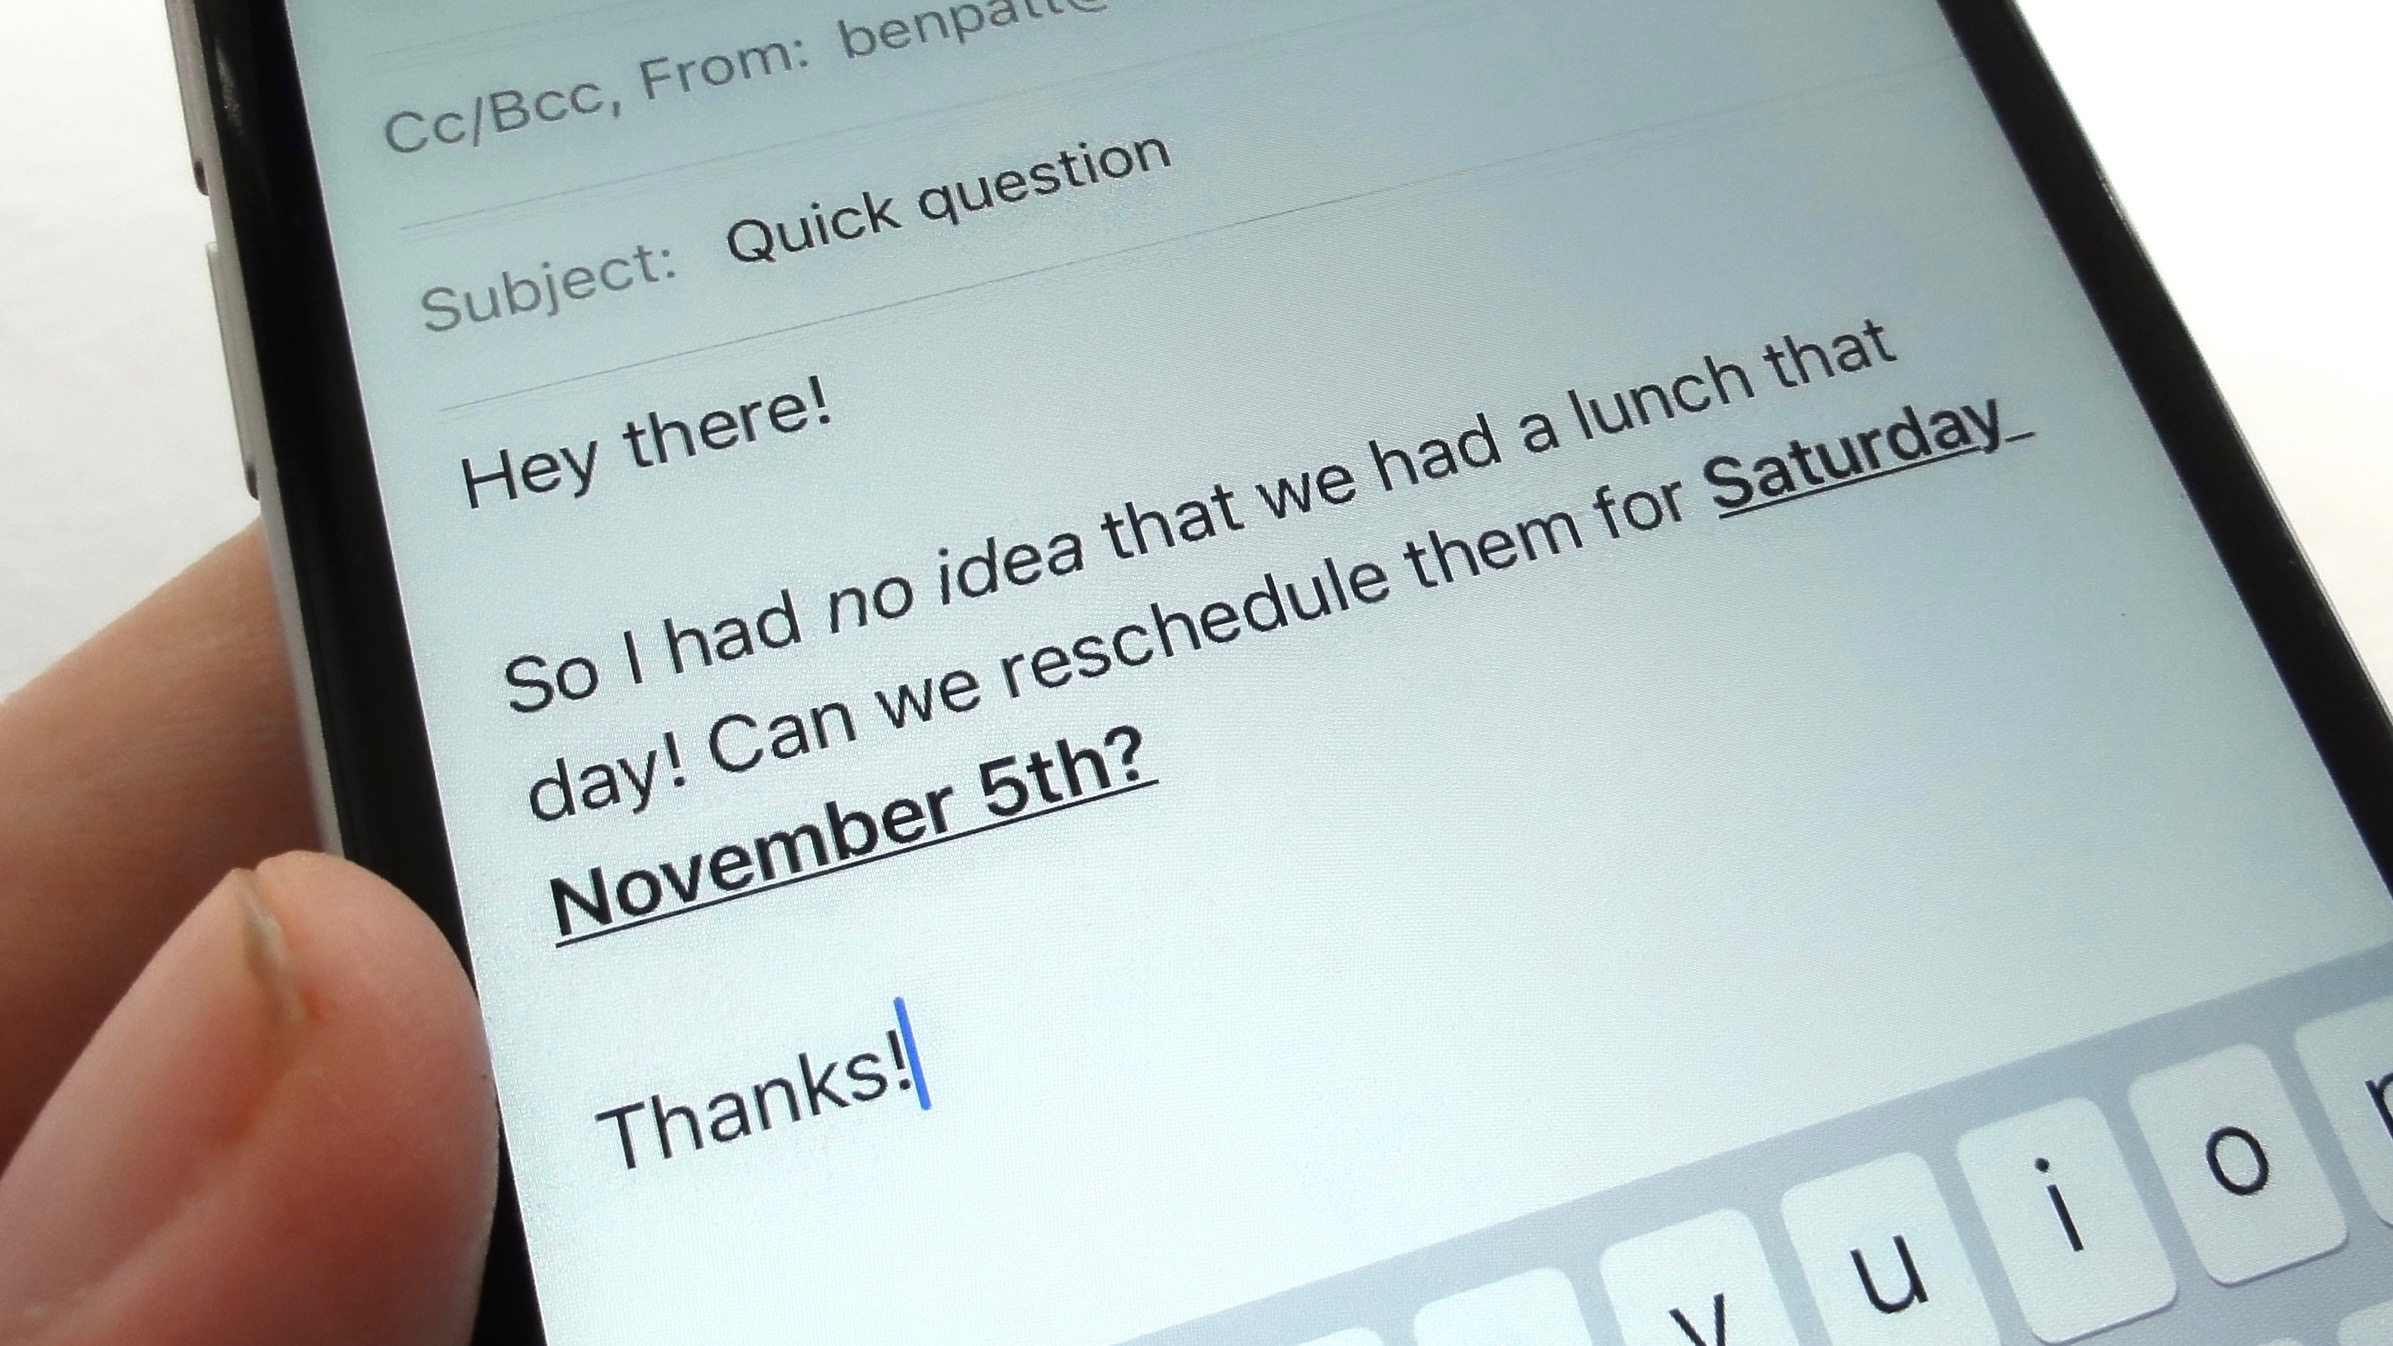 iOS tip: How to bold, italicize or underline text in the Mail app